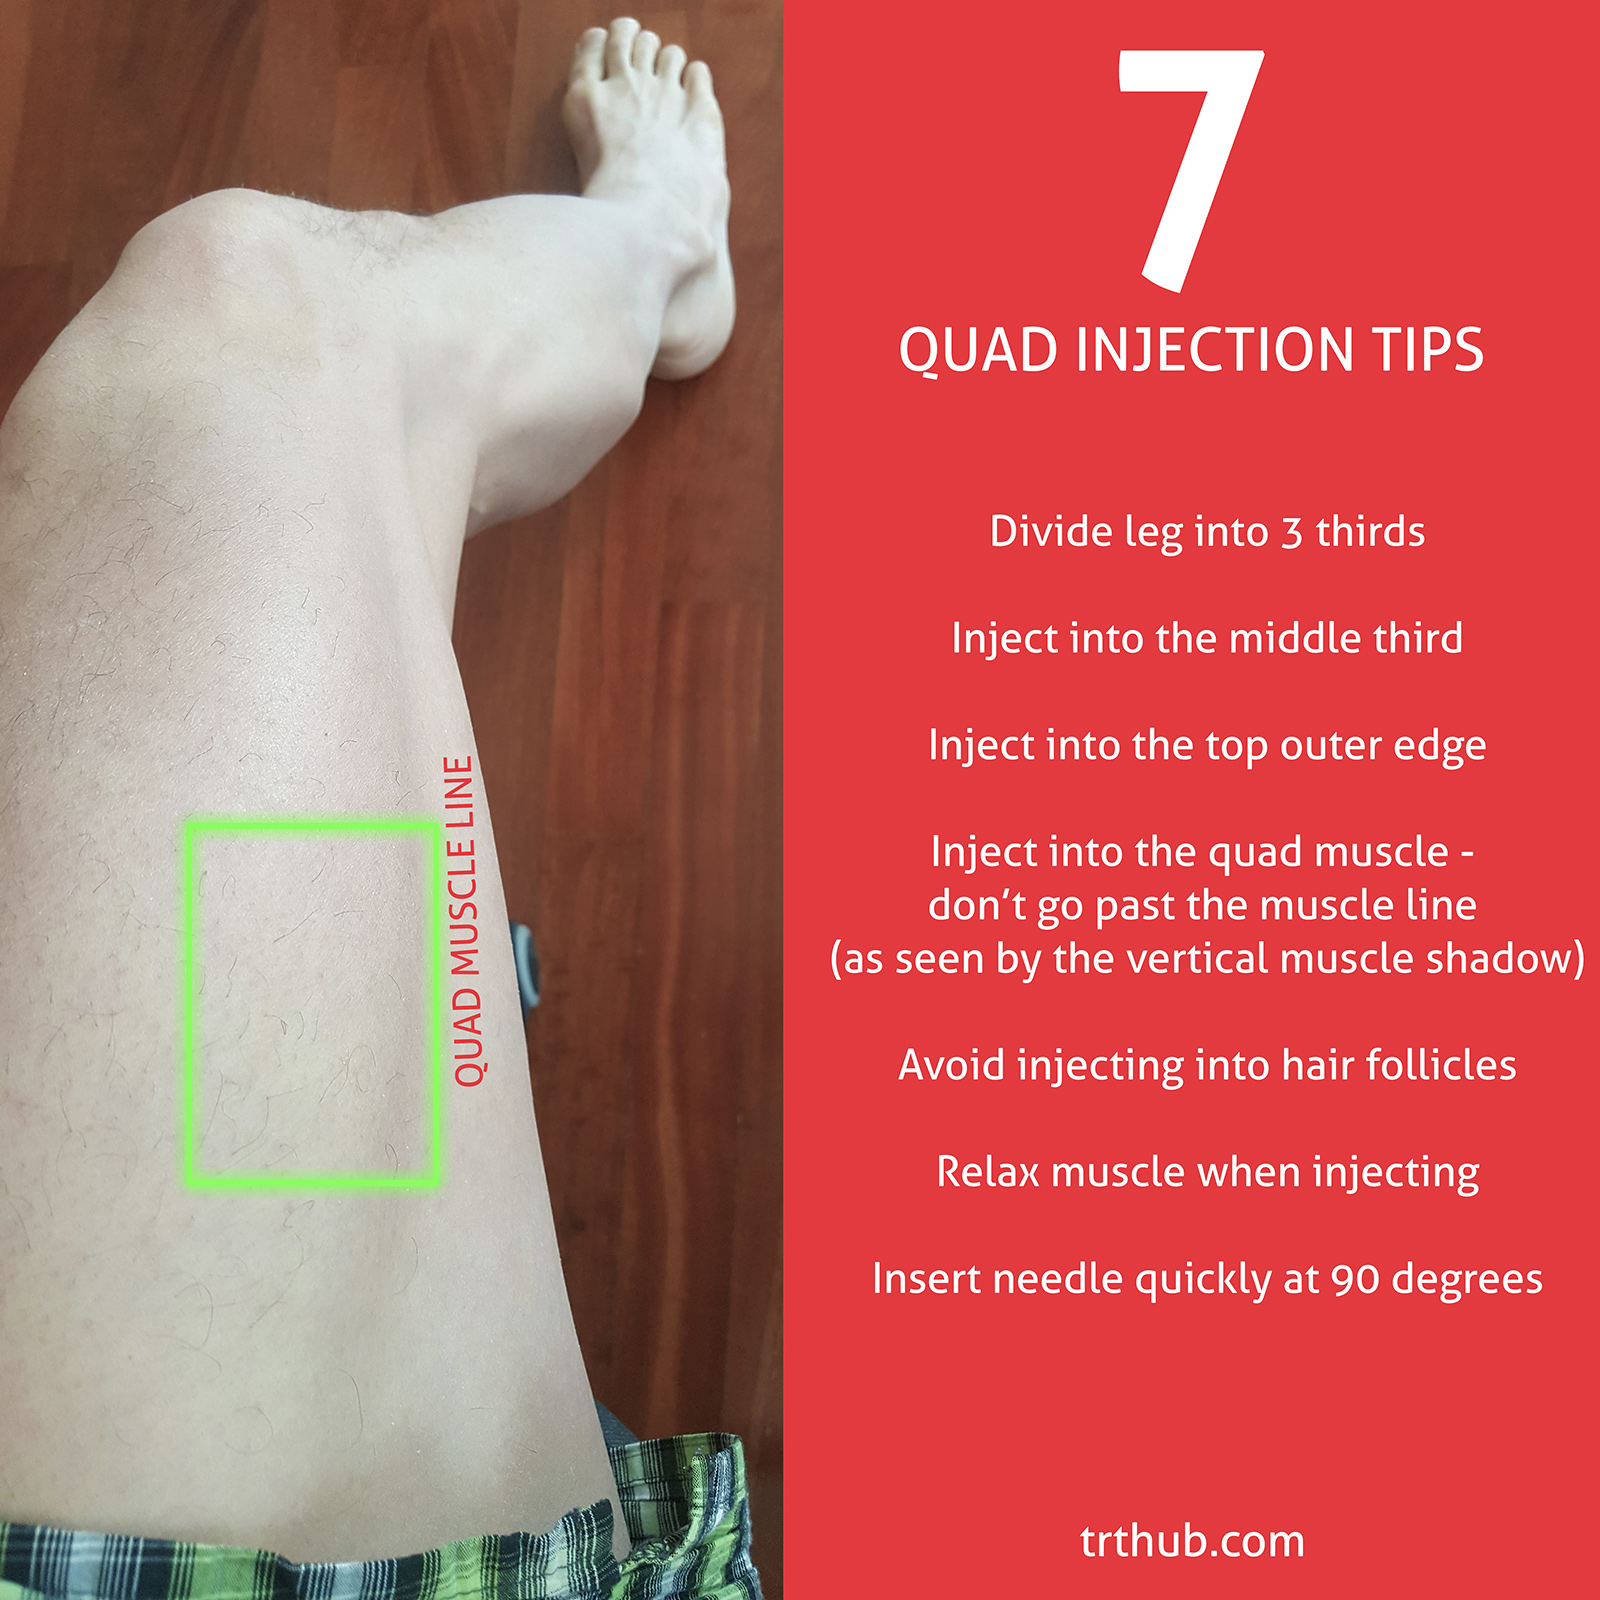 Quad injection tips to reduce injection pain